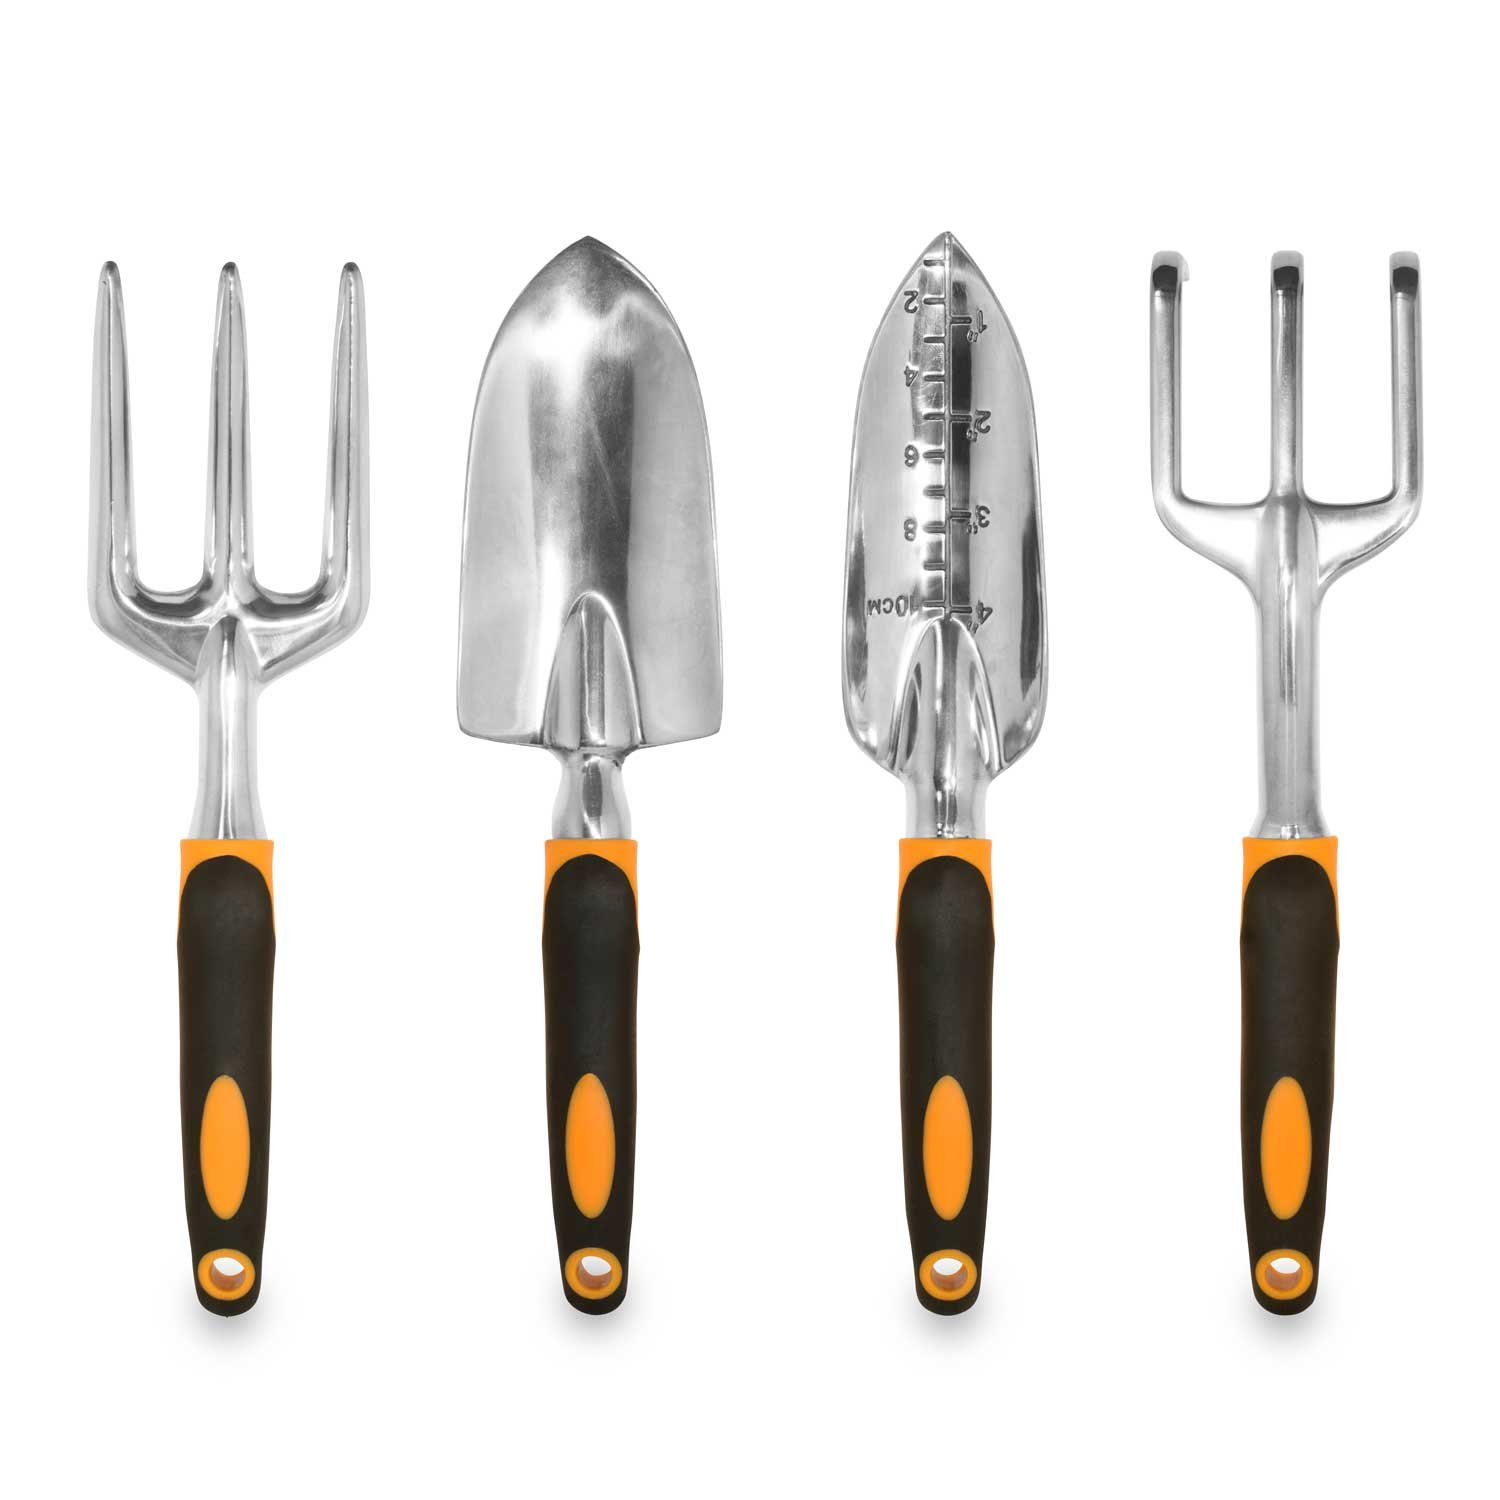 The garden tool review gardening tool reviews from a professional - Amazon Com Gardenhome Ergonomic Garden Tools 4 Piece Tool Set With Trowel Cultivator Transplanter And Weeding Fork Garden Outdoor